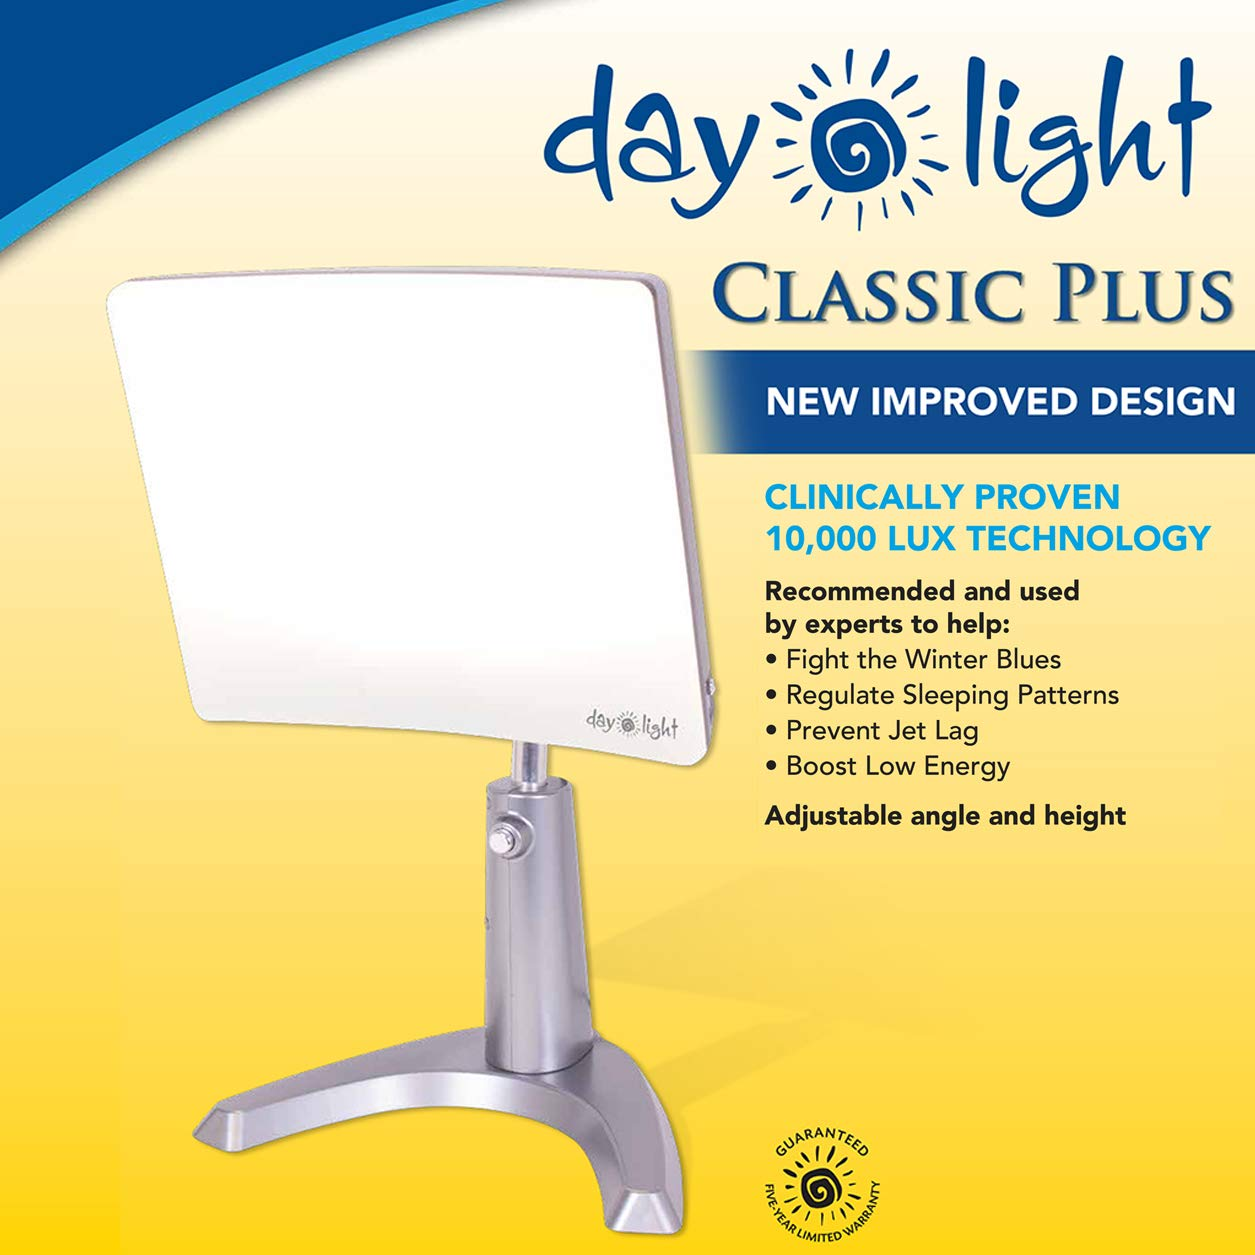 Carex Day-Light Classic Plus Bright Light Therapy Lamp - 10,000 LUX - Sun Lamp Mood Light by Carex Health Brands (Image #5)